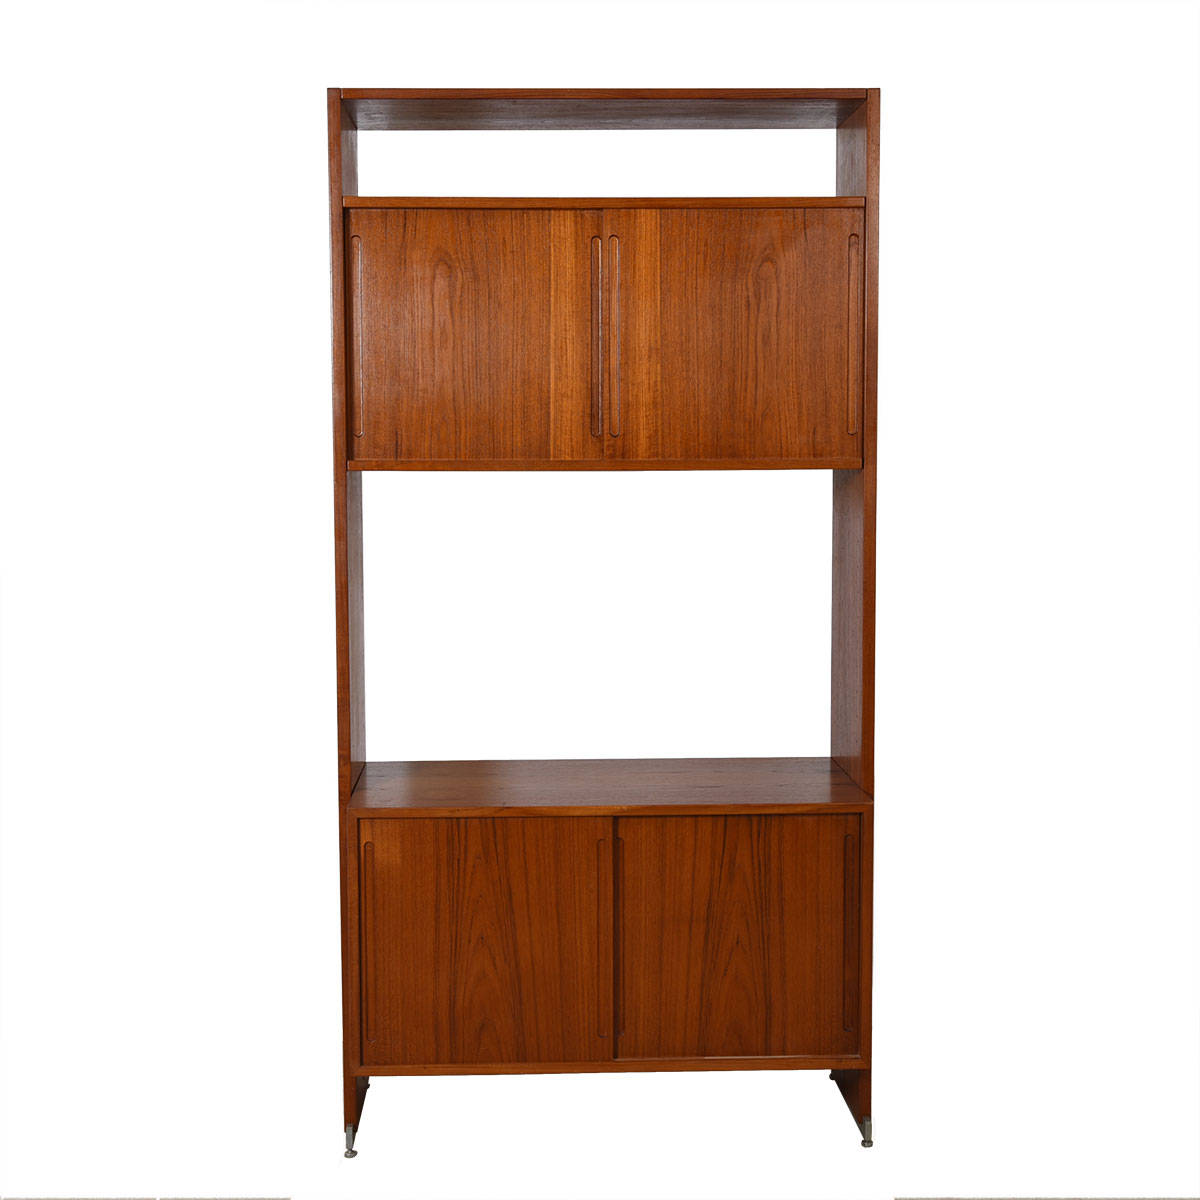 Hans Wegner Danish Teak Single Column Wall Unit / Room Divider